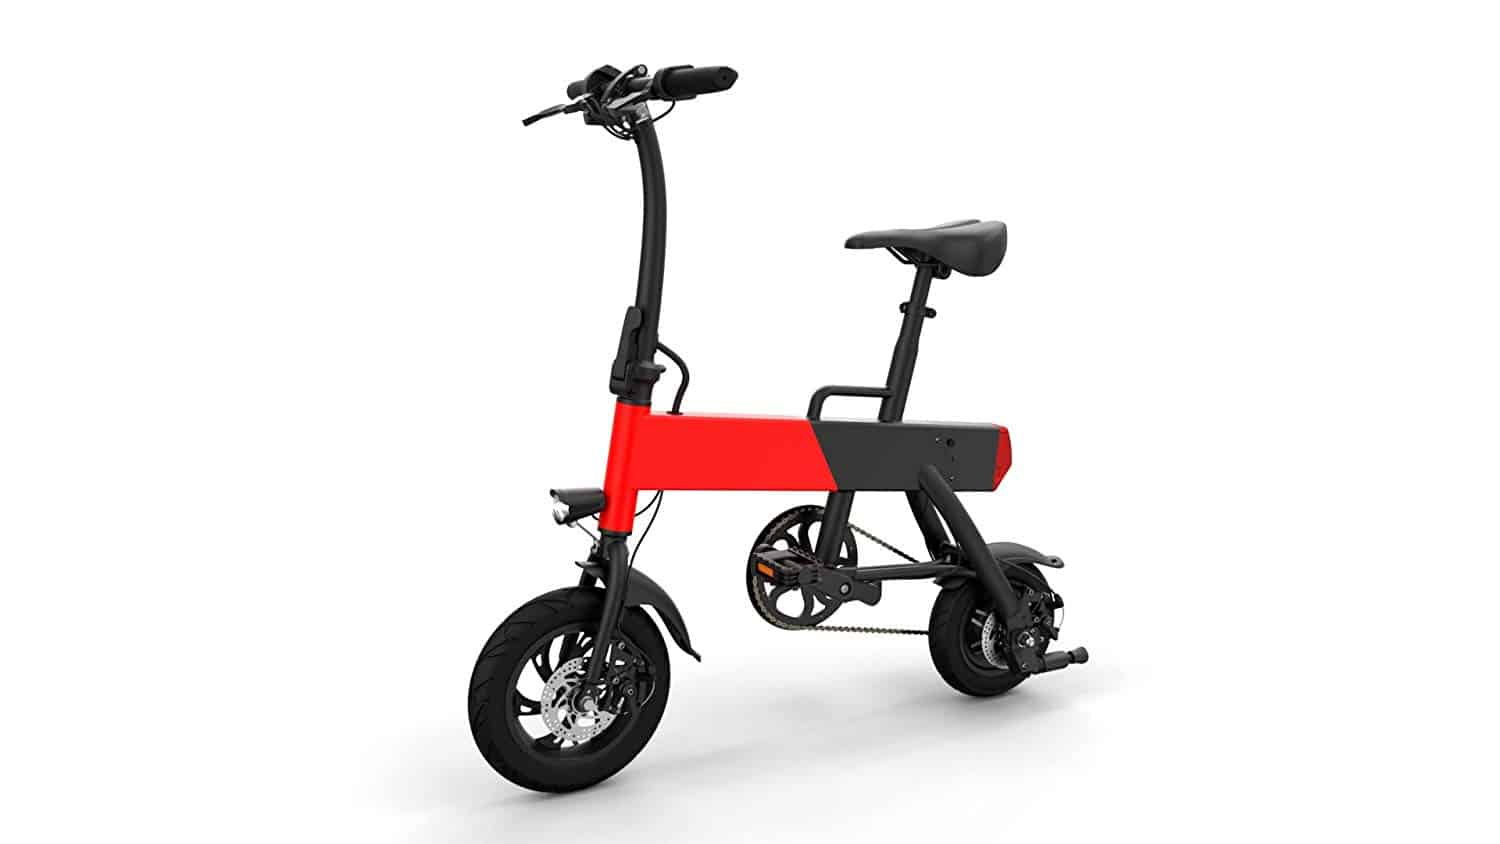 Mini Electric Bike Foldable Portable Brushless Motor Litiium-ion Battery Community Weekend Bike